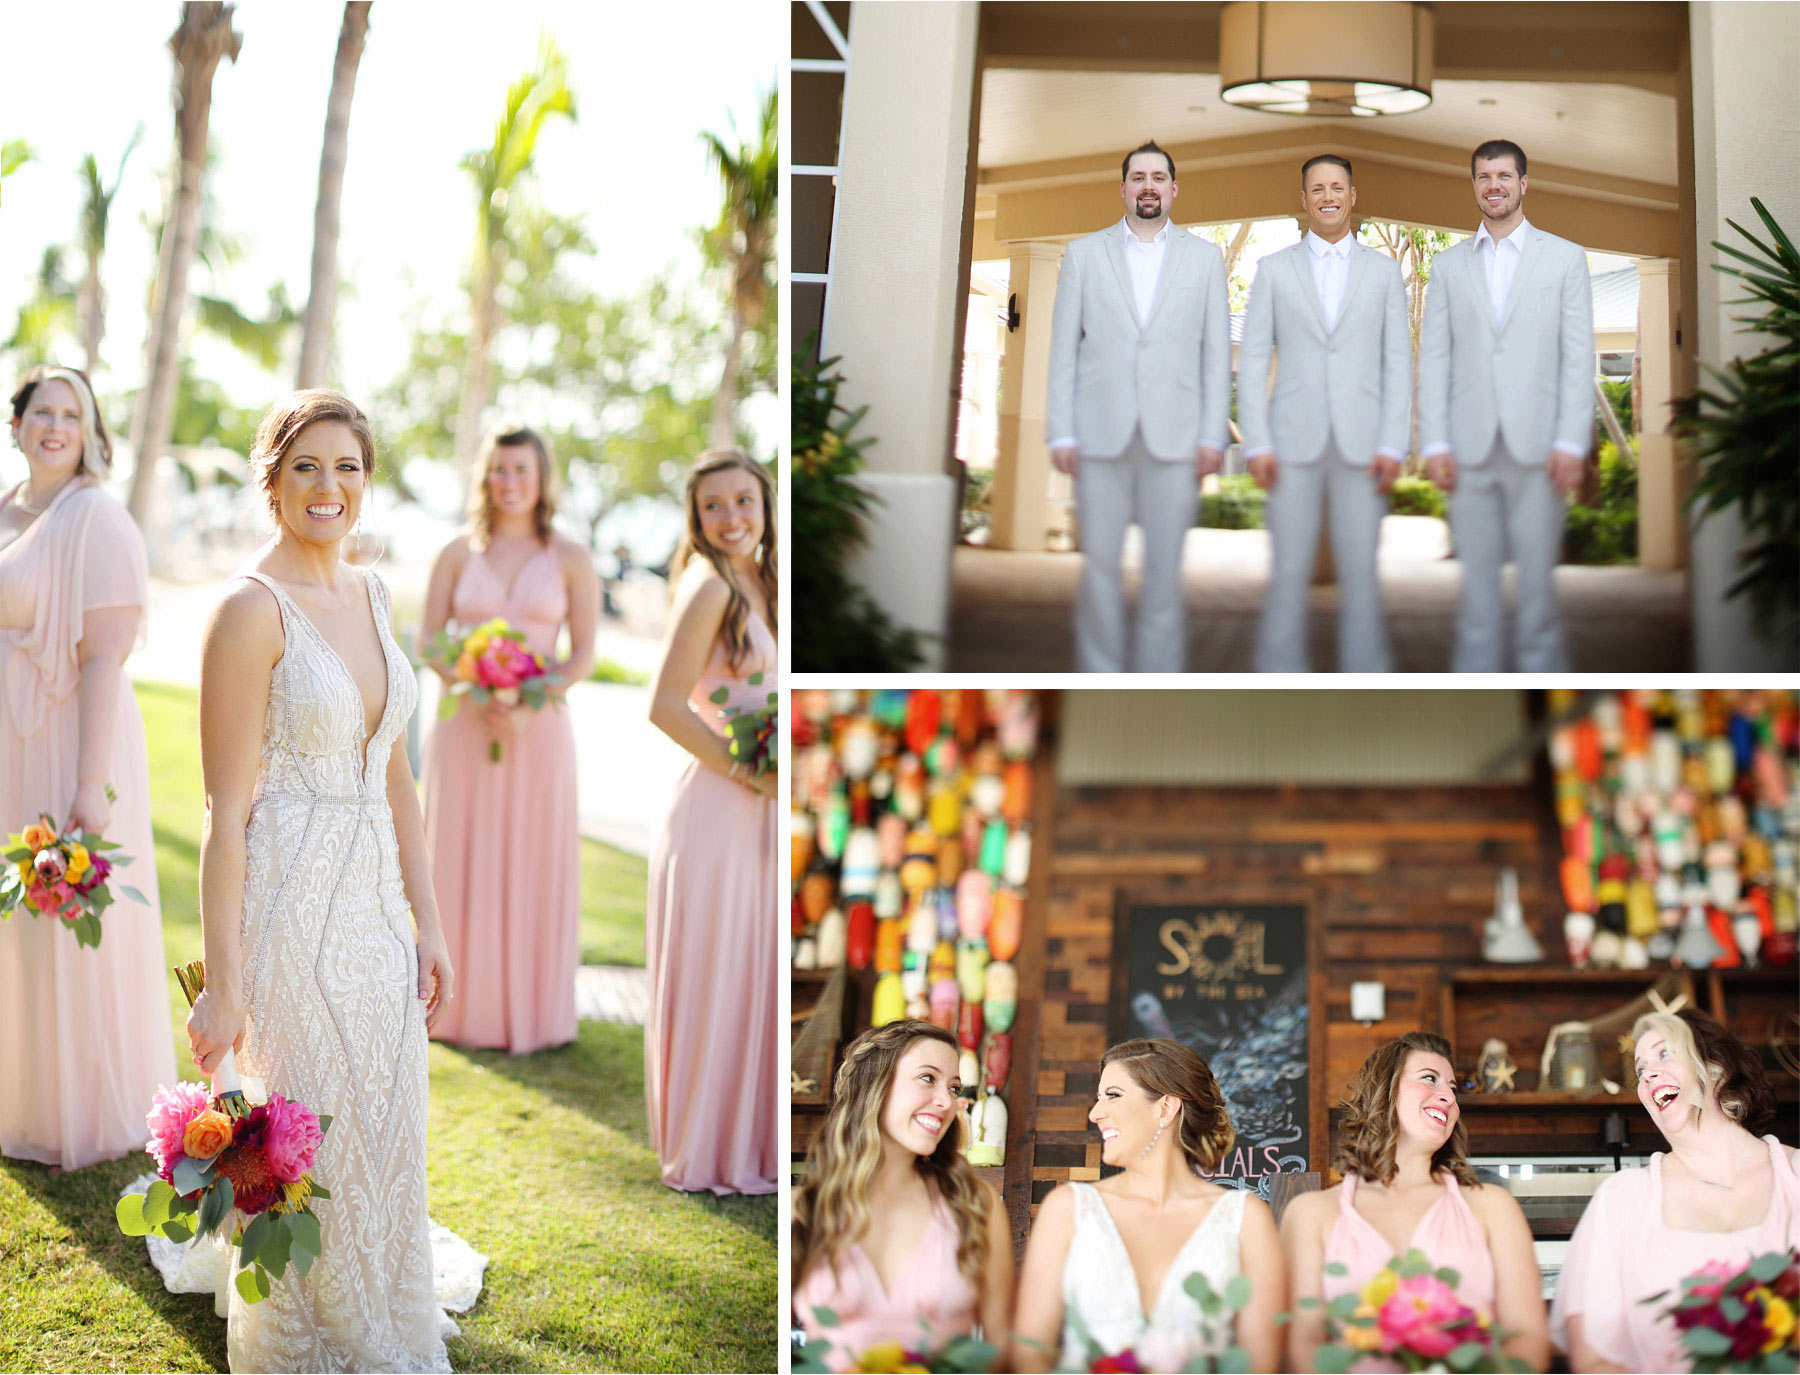 11-Key-Largo-Florida-Keys-Wedding-Photographer-by-Andrew-Vick-Photography-Playa-Largo-Resort-and-Spa-Hotel-Destination-Winter-Bride-Groom-Bridesmaids-Groomsmen-Flowers-Carrie-and-Brian.jpg